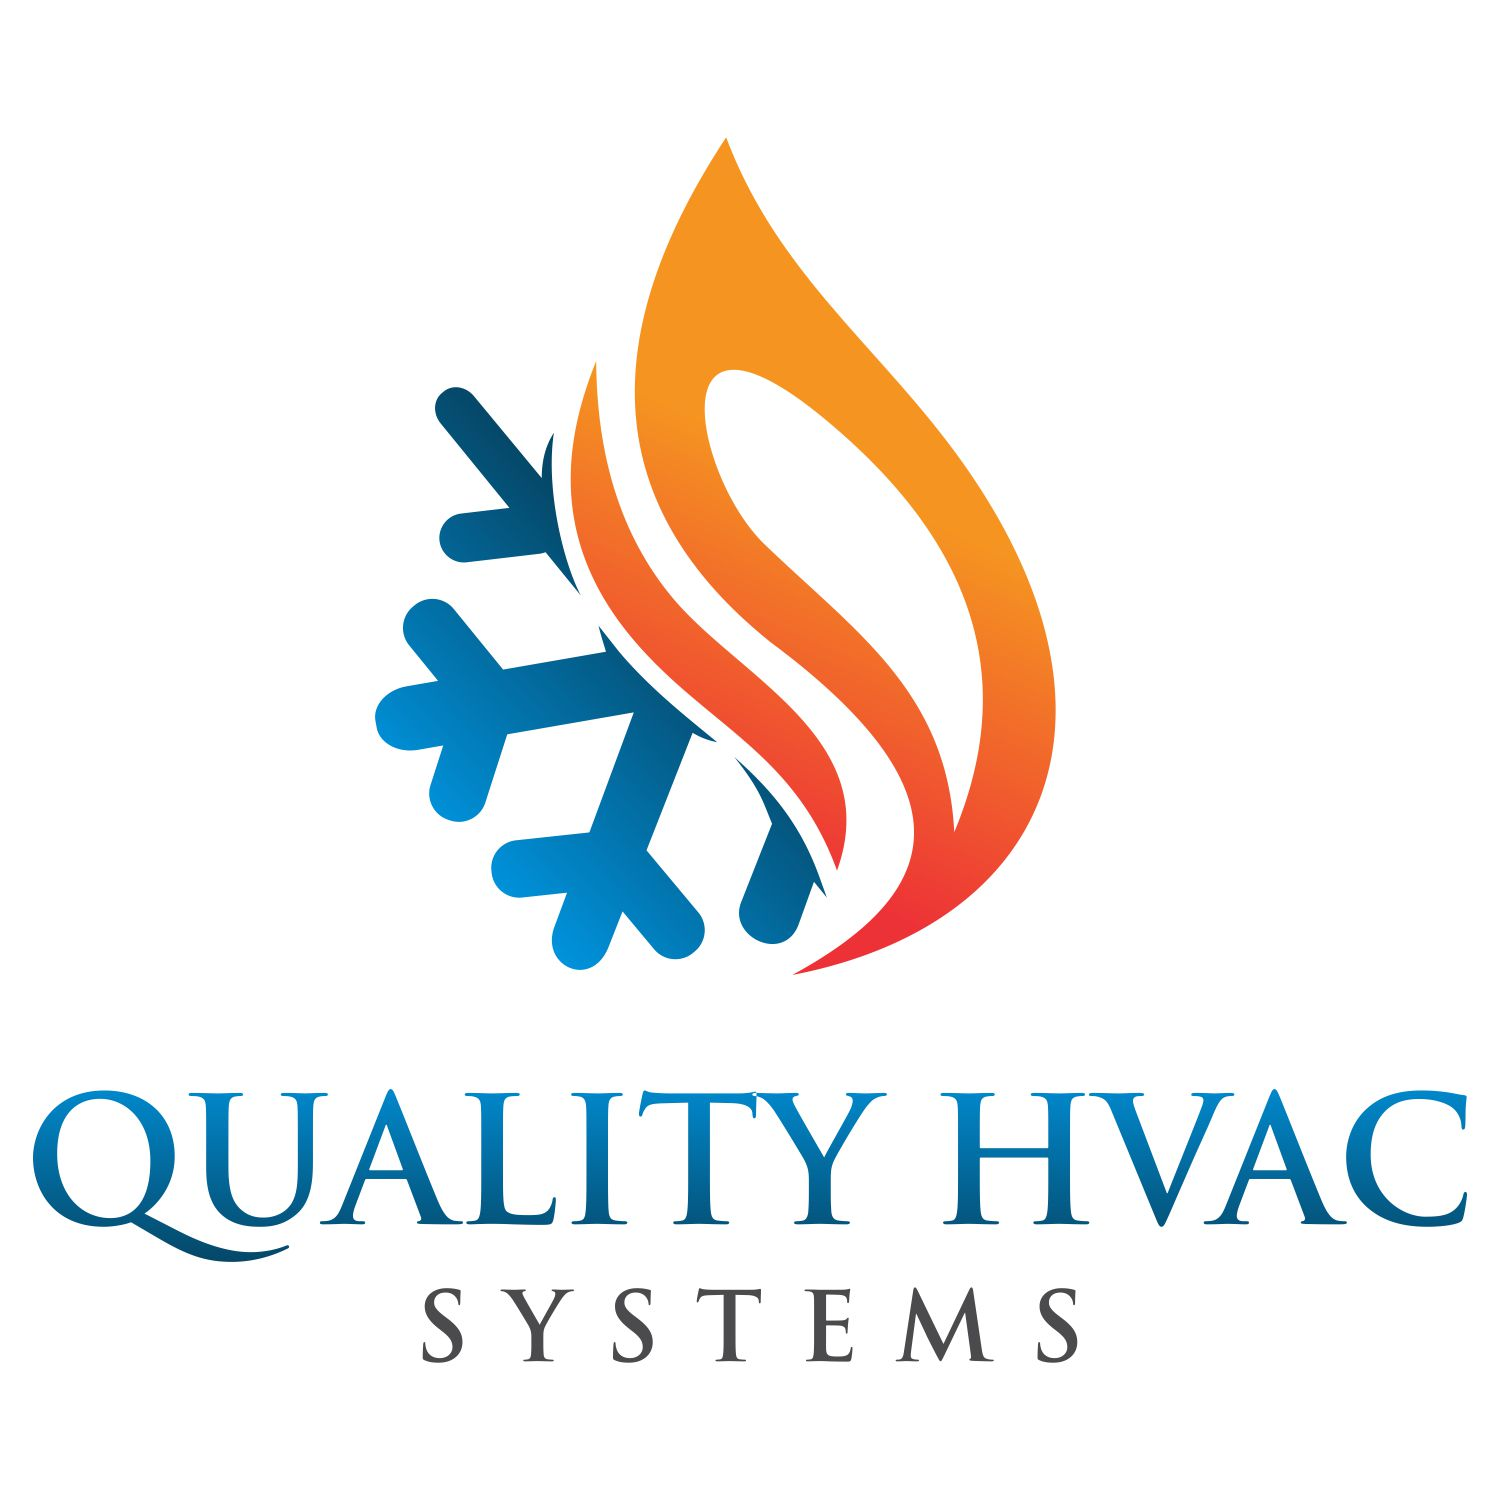 Quality Hvac Systems